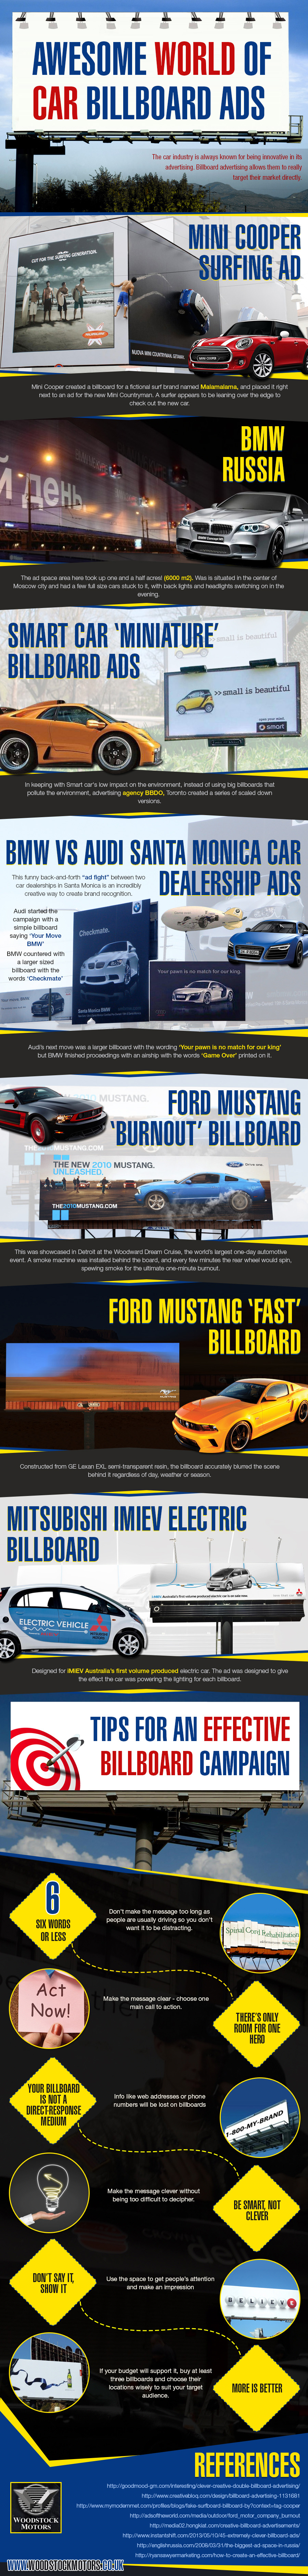 Car Billboards Infographic